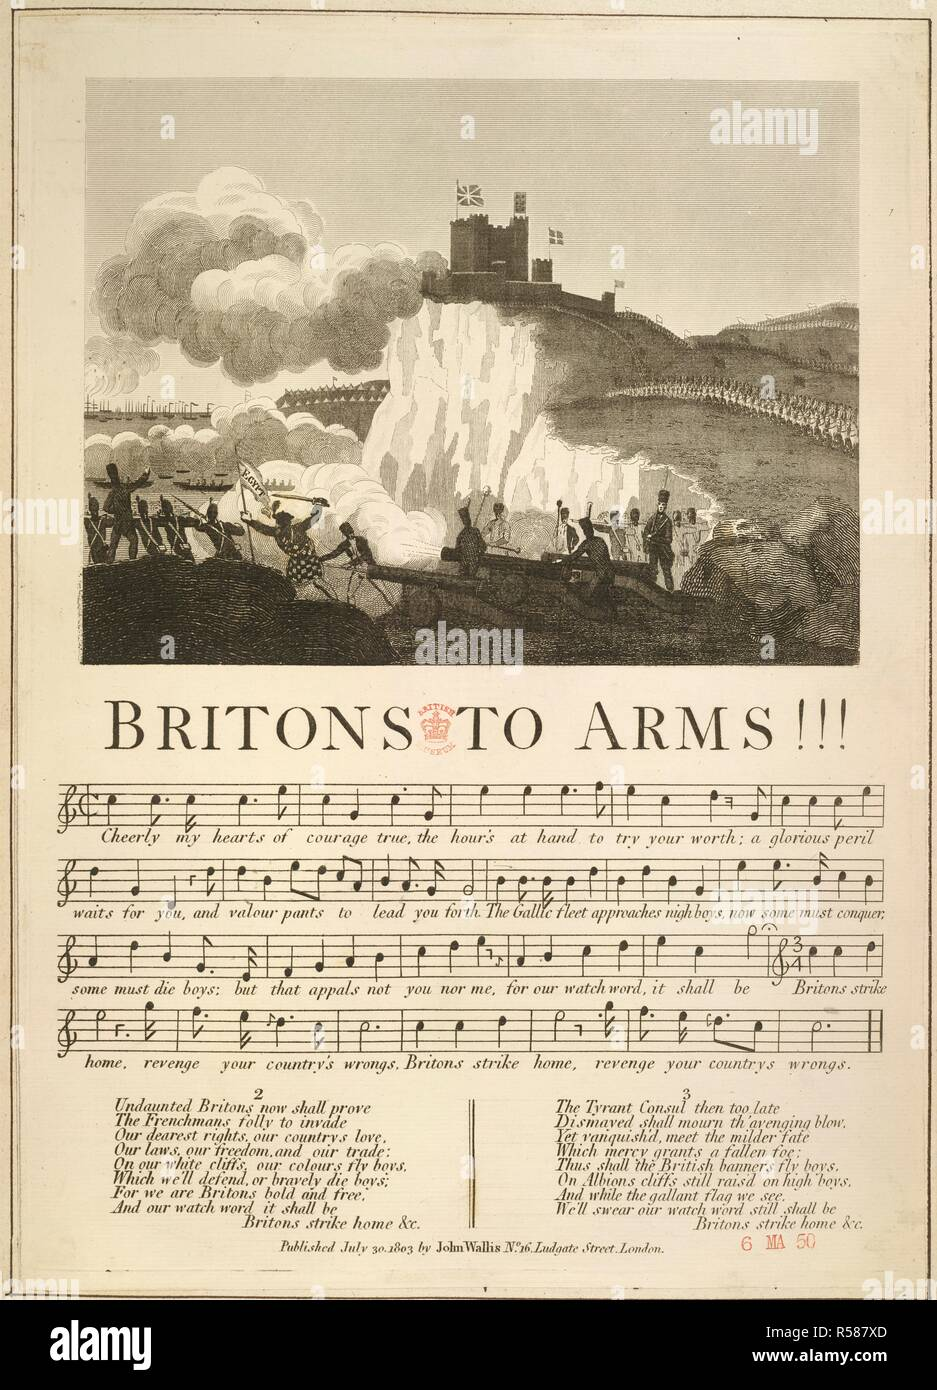 Britons to Arms  Loyal and patriotic hand-bills, songs